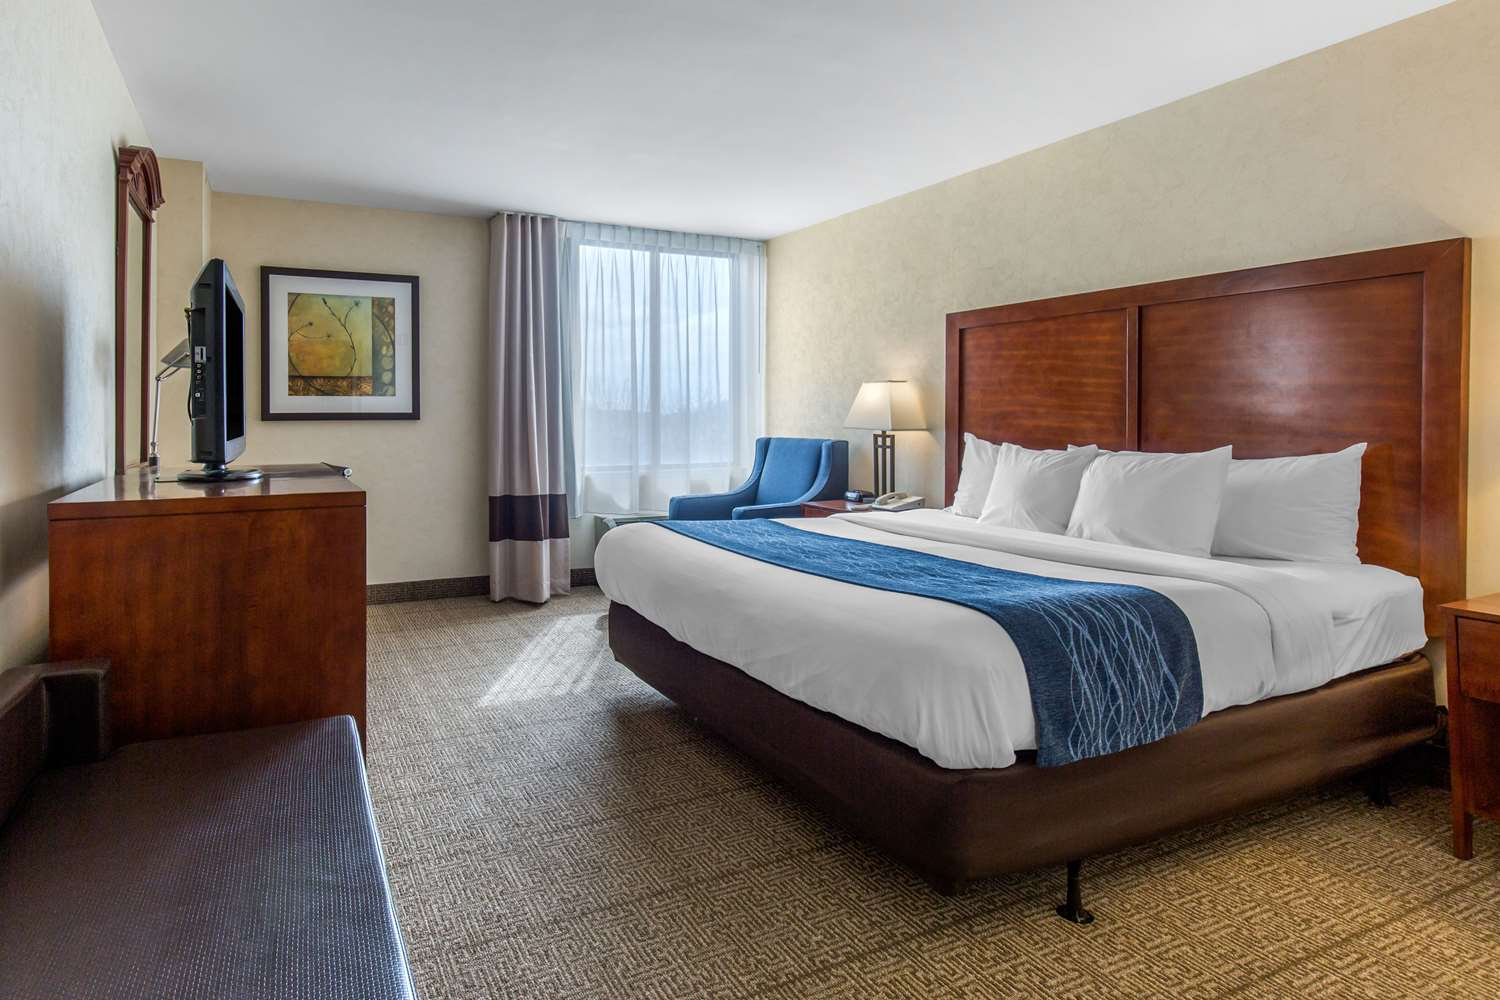 Room - Comfort Inn Conference Center Hotel Bowie